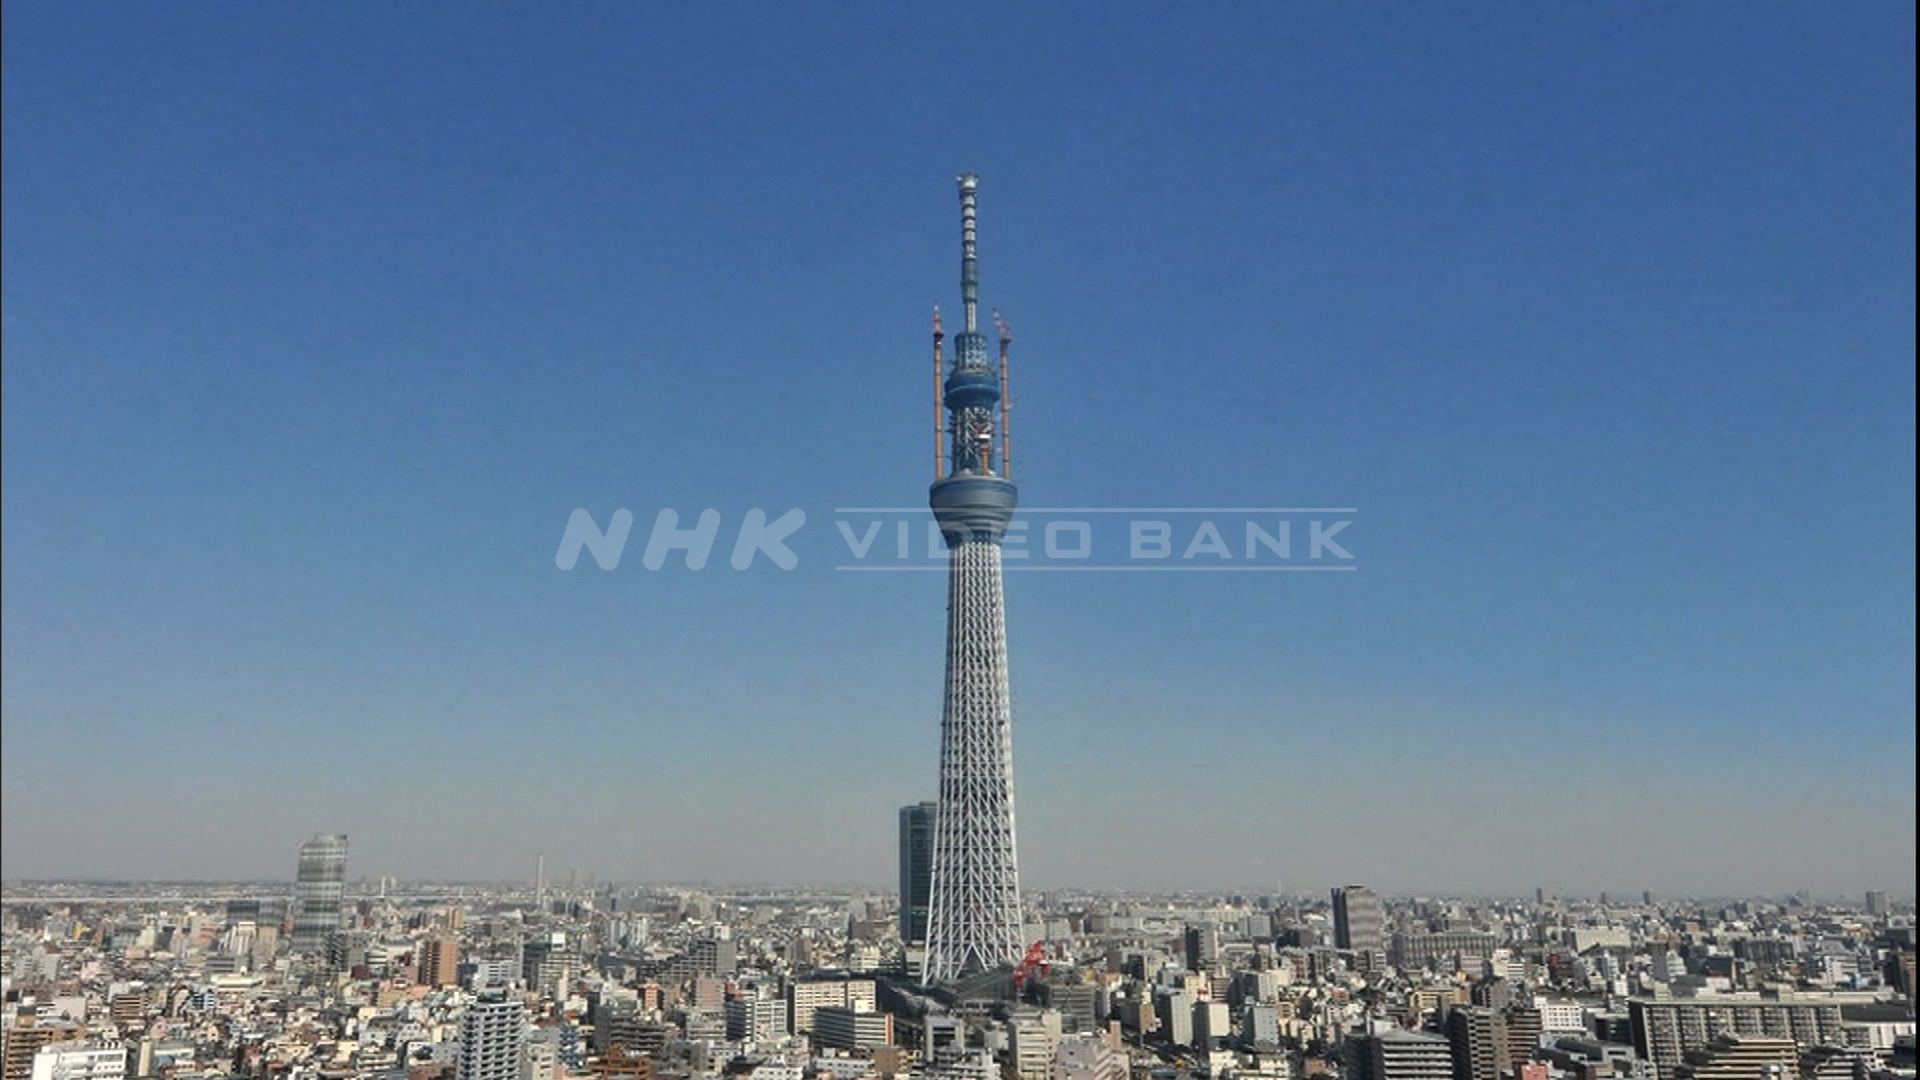 Time Lapse: how TOKYO SKYTREE became the world's tallest free-standing broadcasting tower